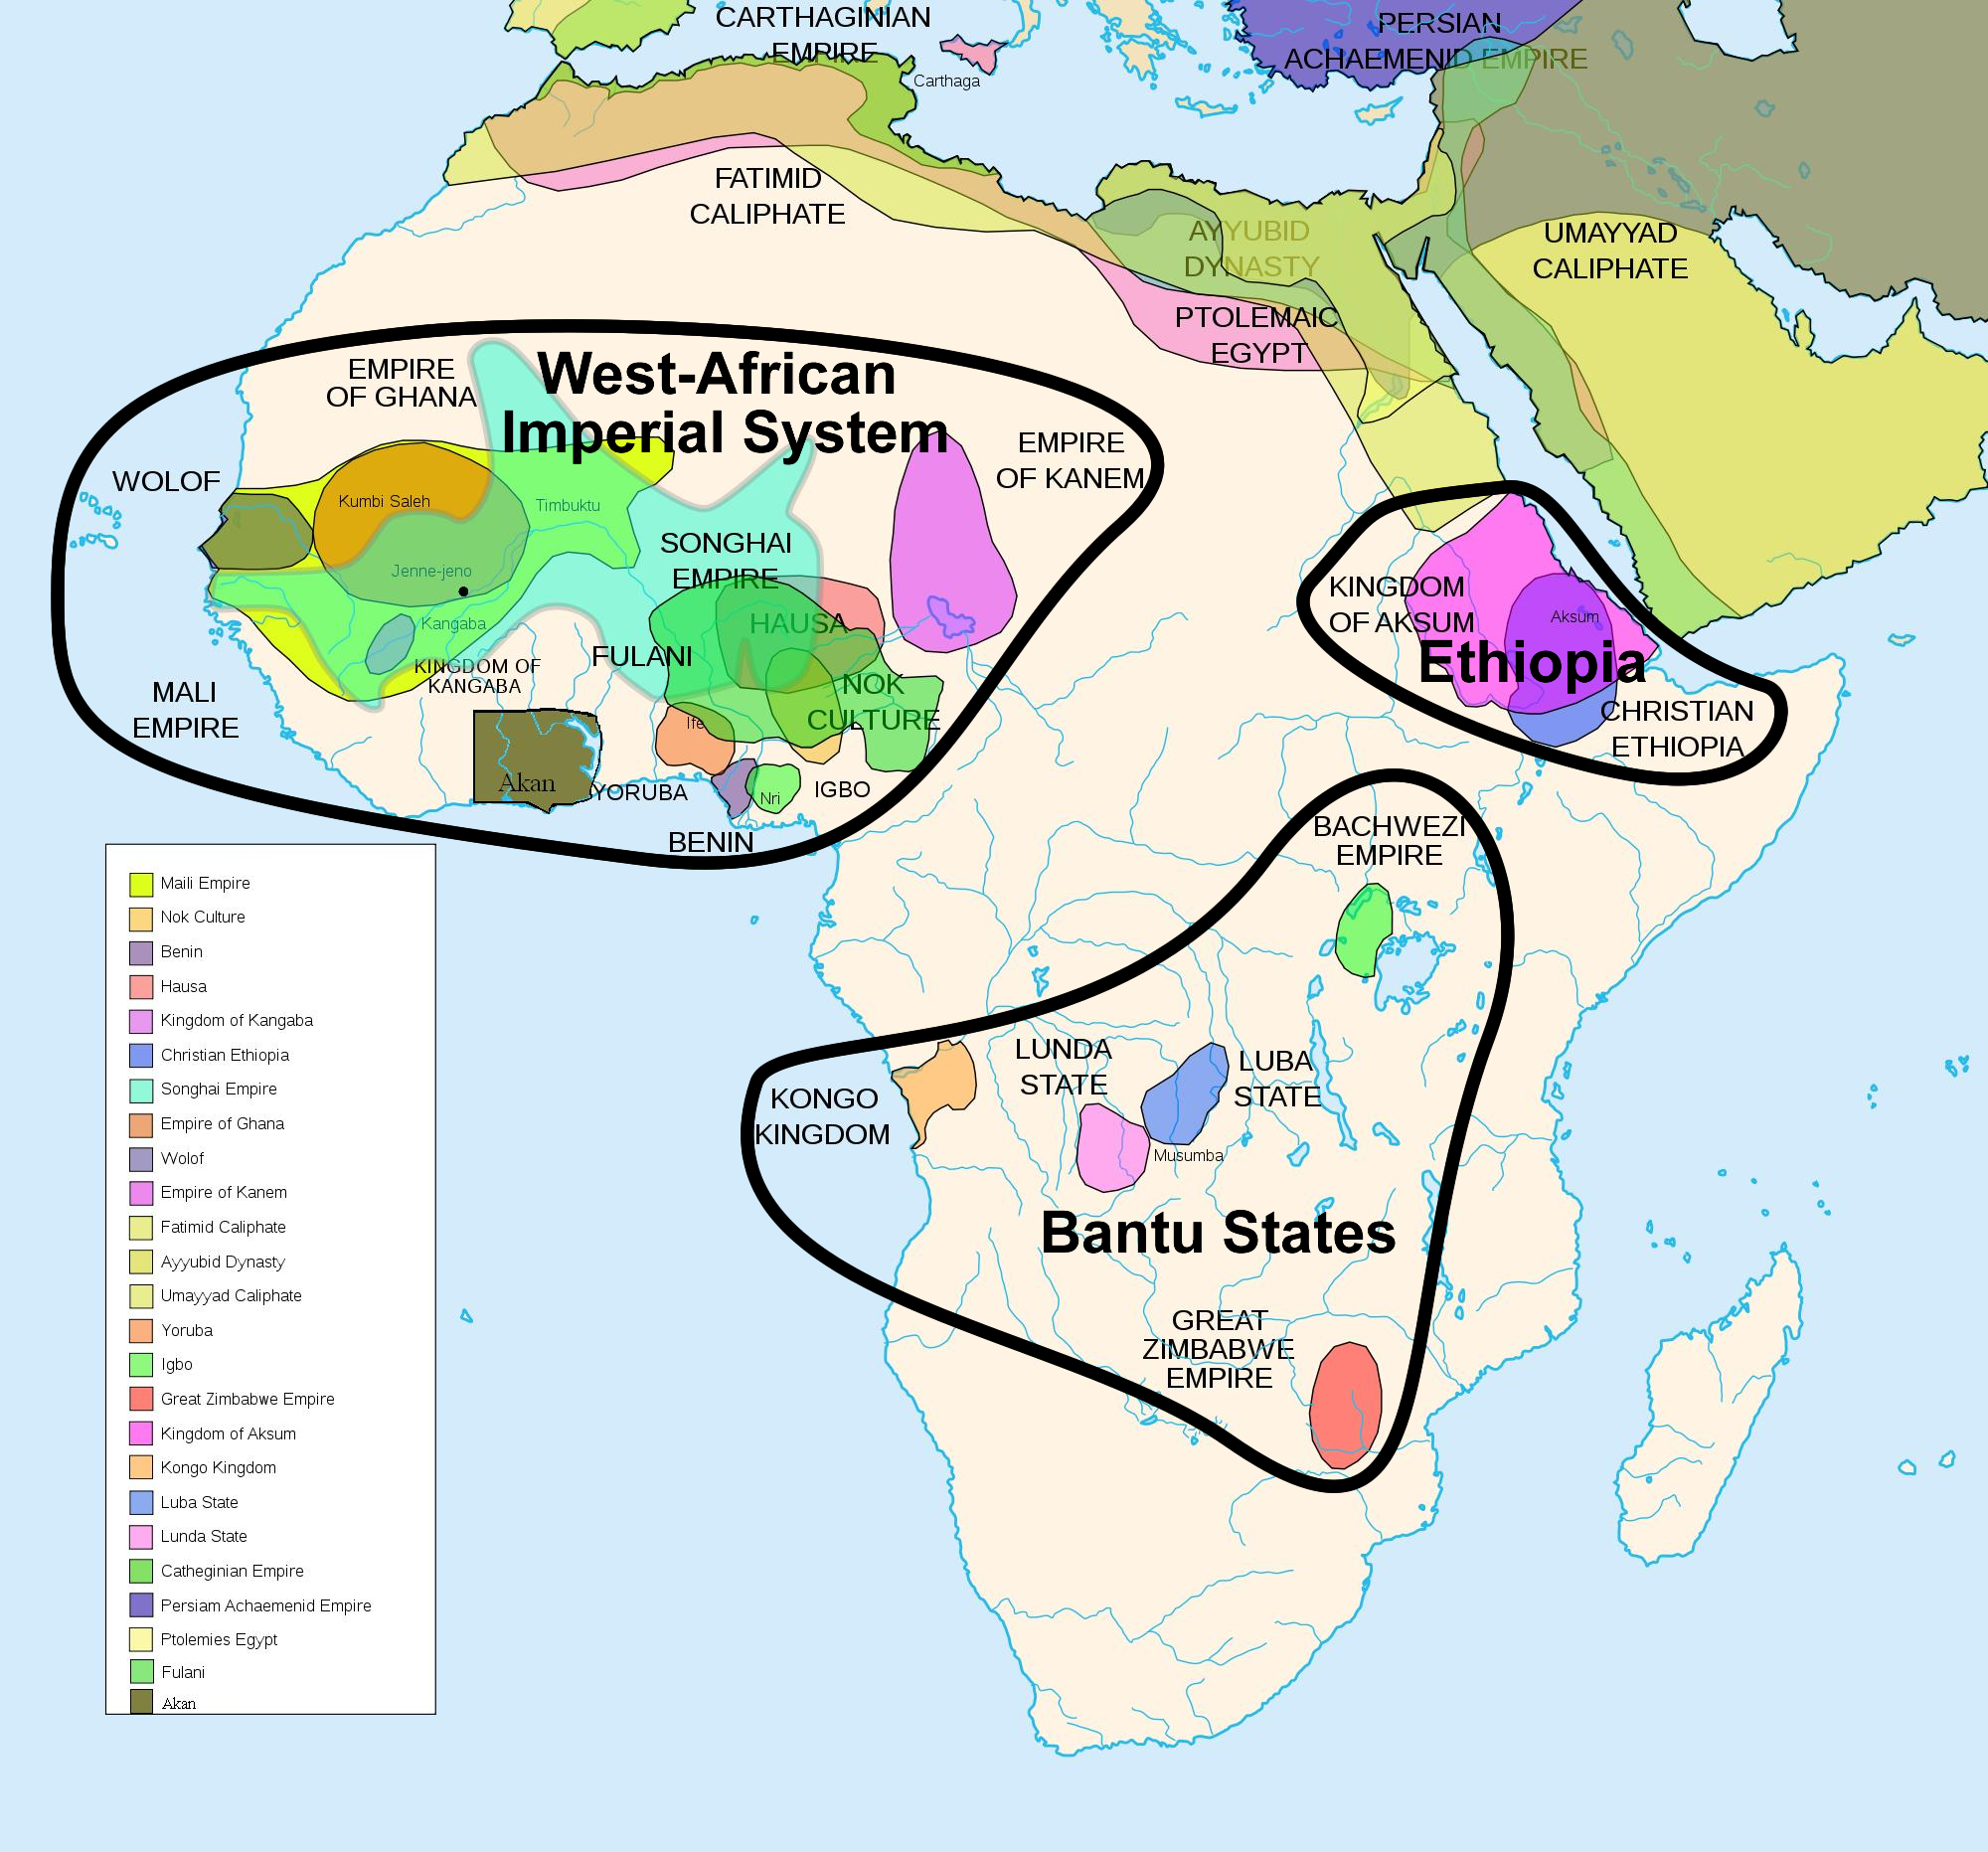 the environment of ancient african civilizations How the geography and climate affected early civilizations  report abuse transcript of how the geography and climate affected early civilizations epic of gilgamesh tigris and euphrates river location nile river  and geography shaped those civilizations ancient mesopotamian and egyptian had same climate, yet their geographical features.